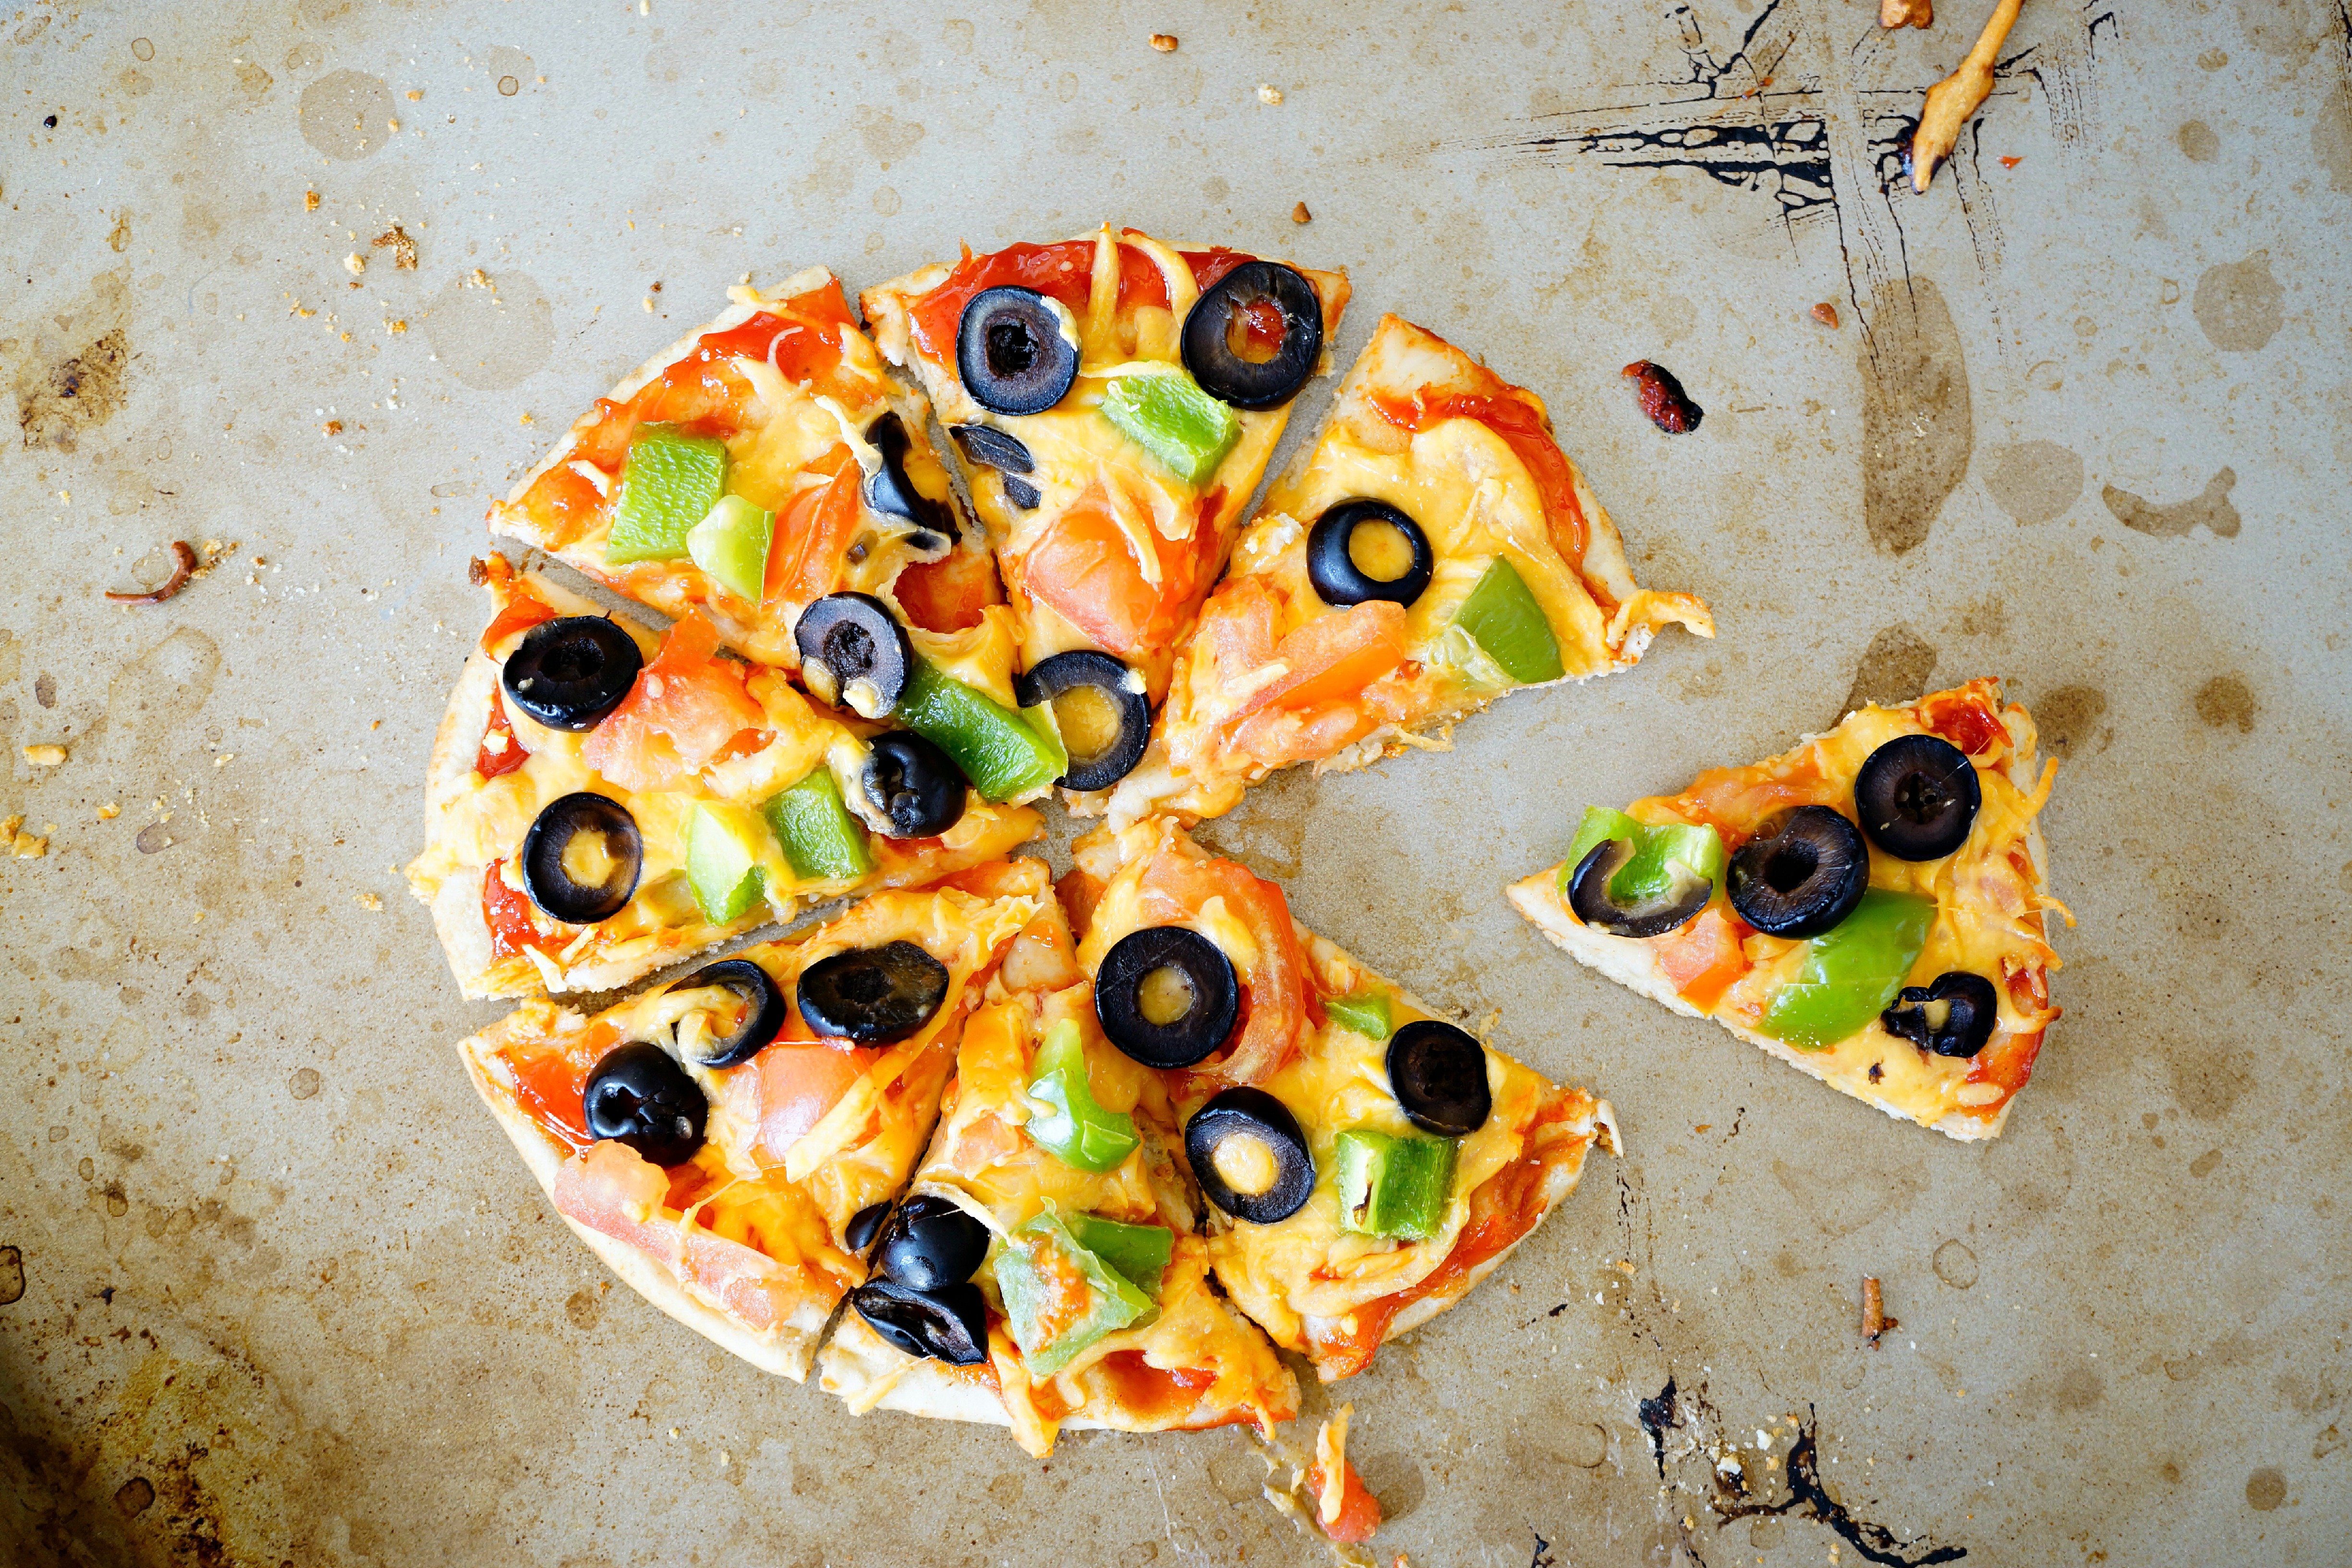 Healthy Pizza Make Your Own Flavor with Mozzarella Cheese, Olive, Pepper and Tomatoes